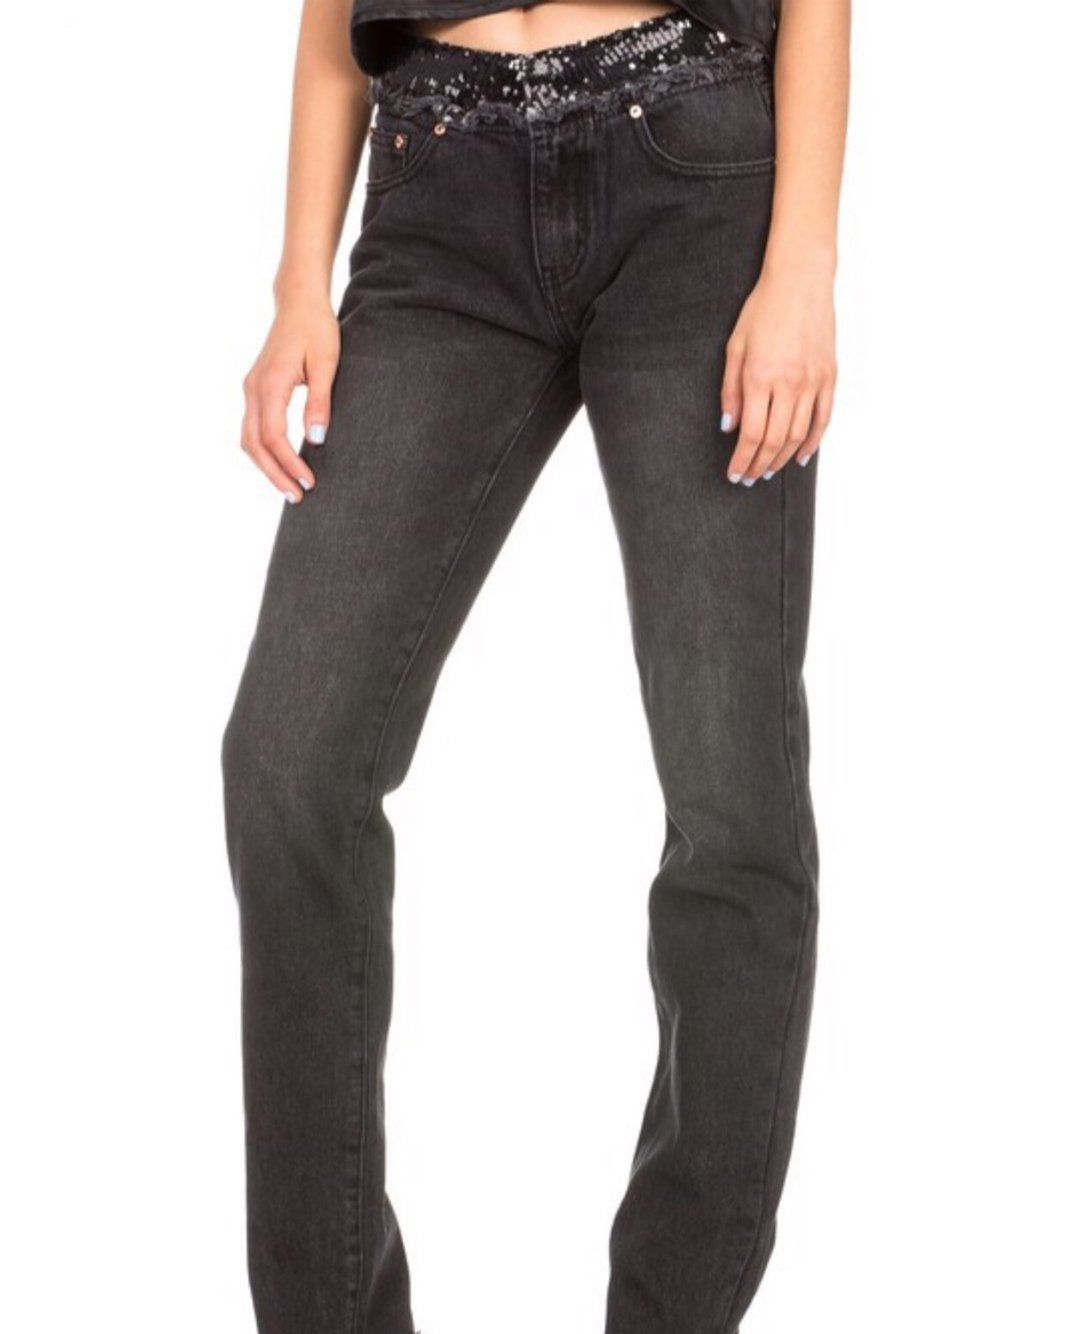 BLACK SEQUIN STRESSED JEANS